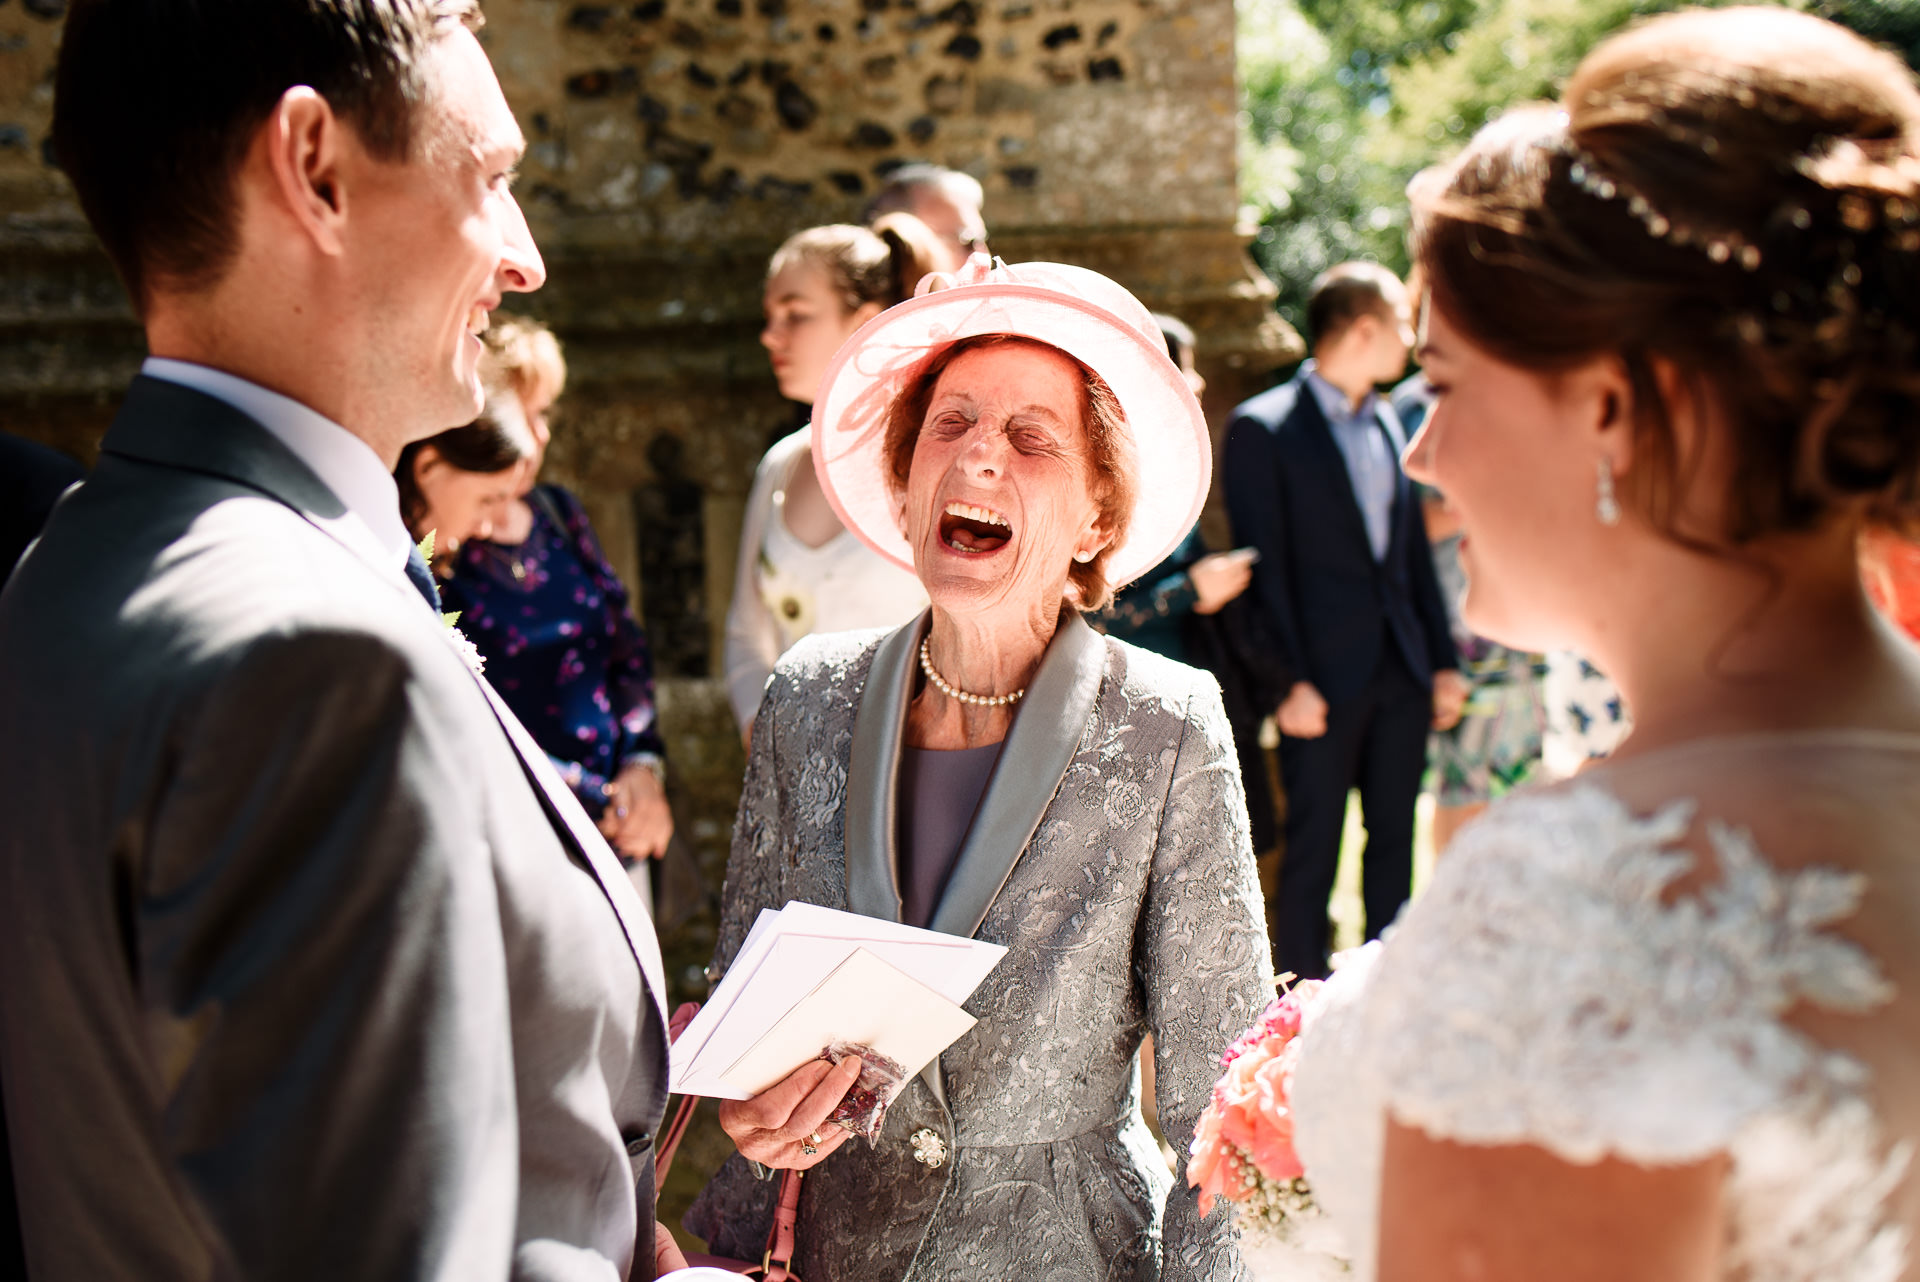 A grandma laughing at her grandsons wedding